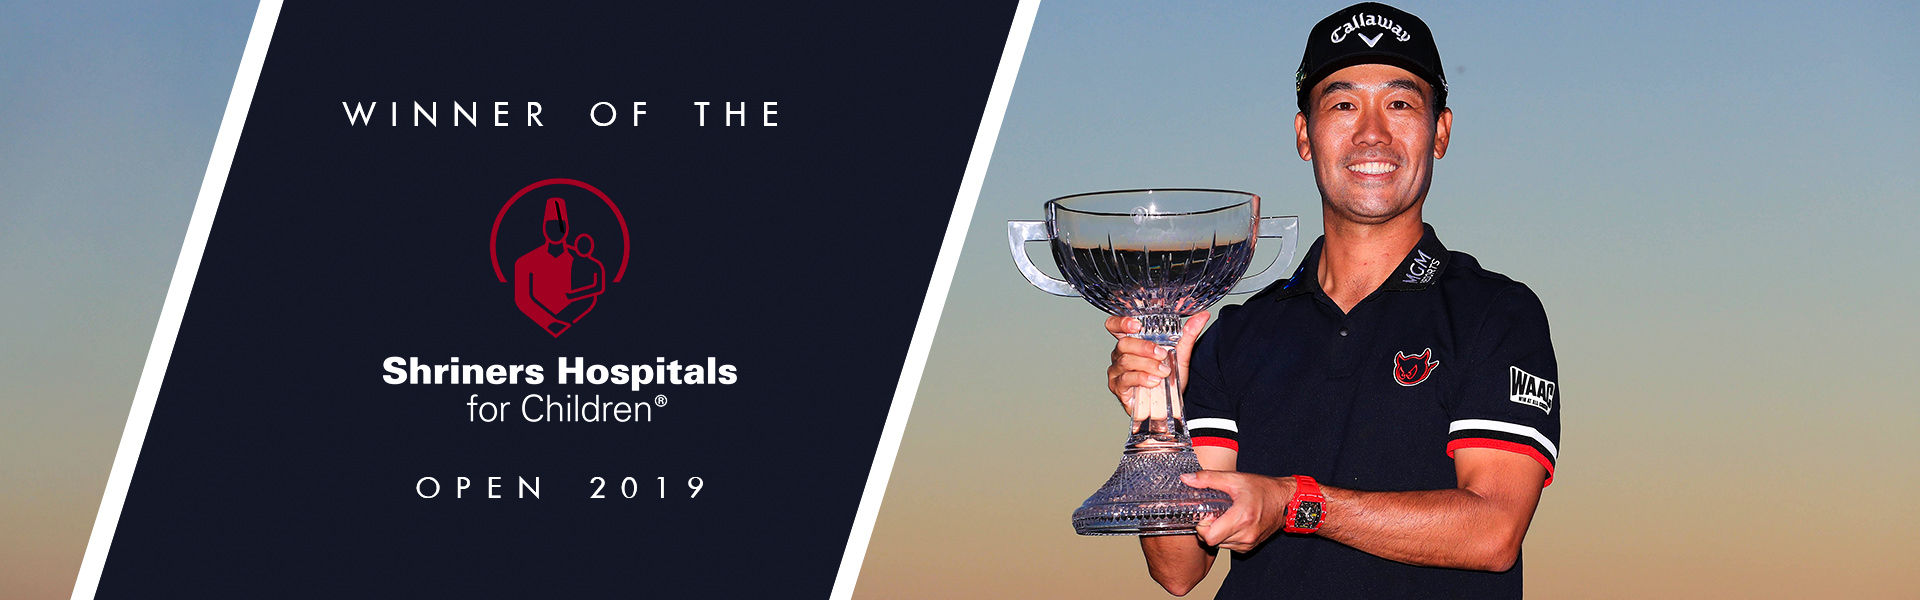 PGA Tour 2019-20: Kevin Na wins the Shriners Hospitals for Children Open